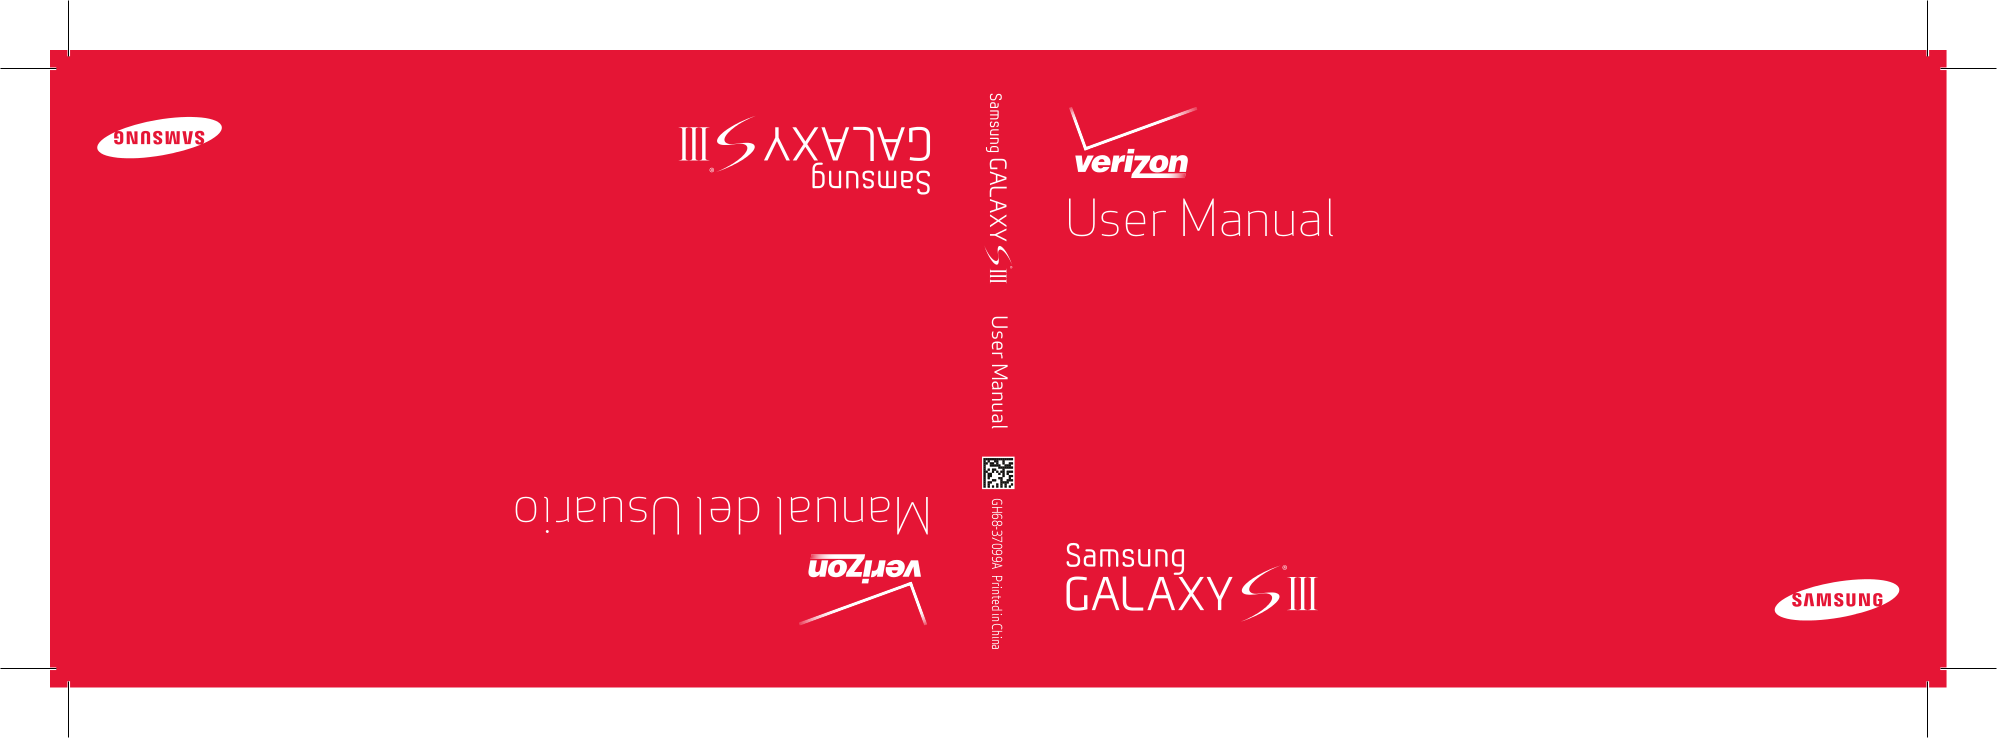 Samsung Galaxy S Iii Manual Pdf